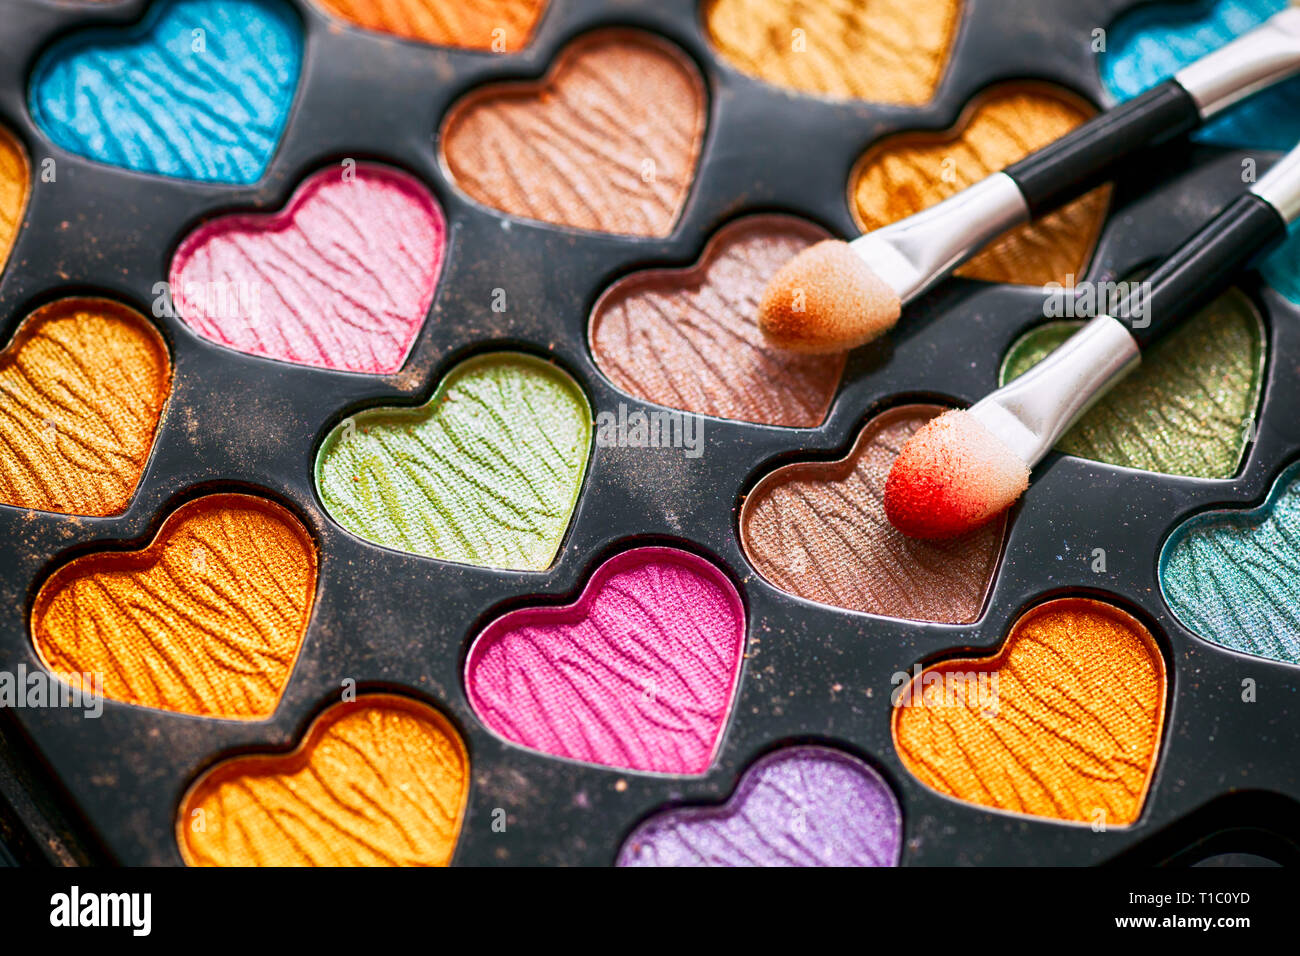 Eyeshadow heart shaped palette with two applicators. Close-up. - Stock Image